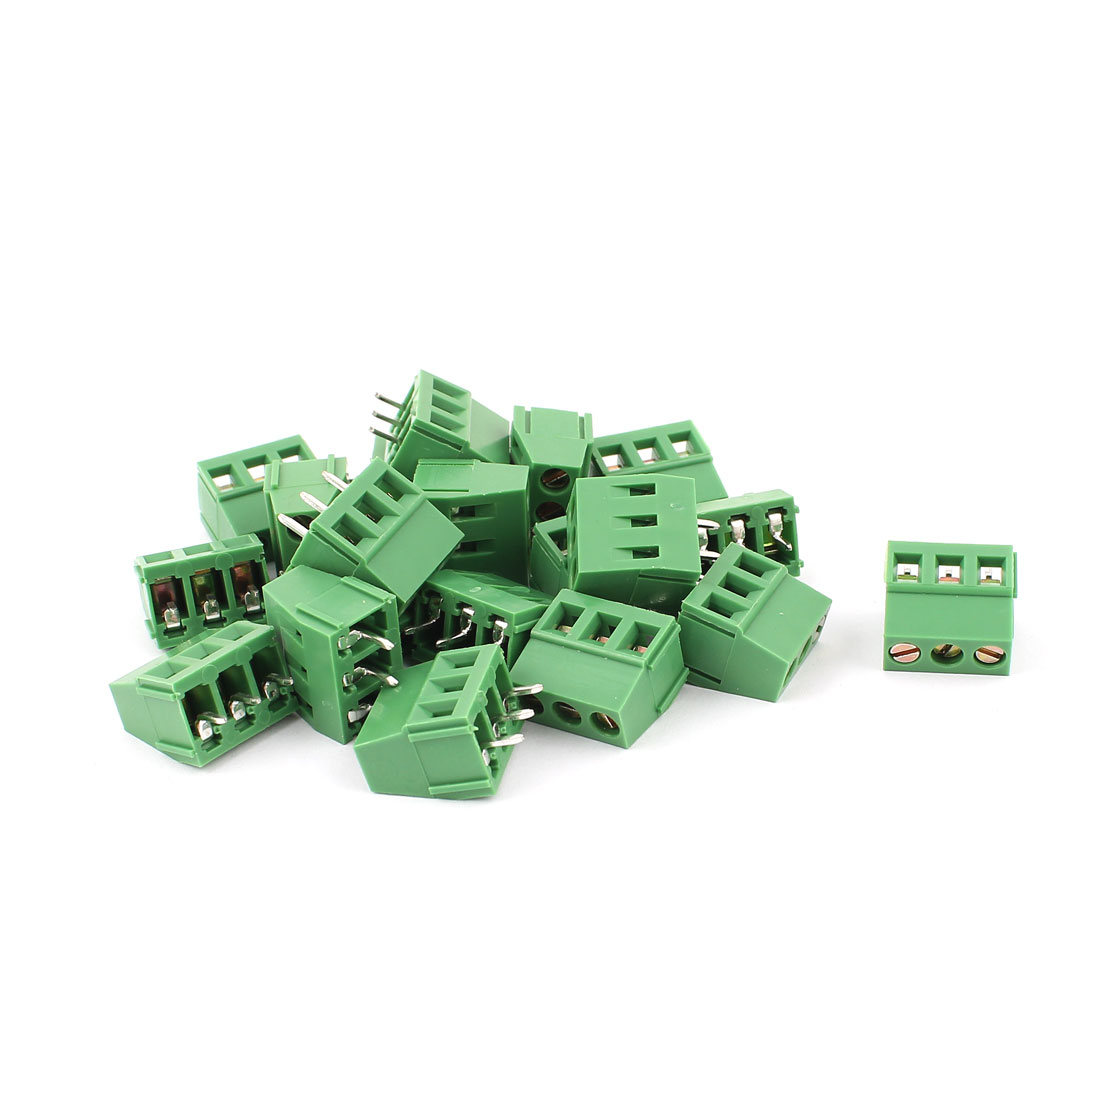 20 Pcs 3 Terminals 5.08mm Pitch PCB Mount Screw Terminal Block AC 250V 8A